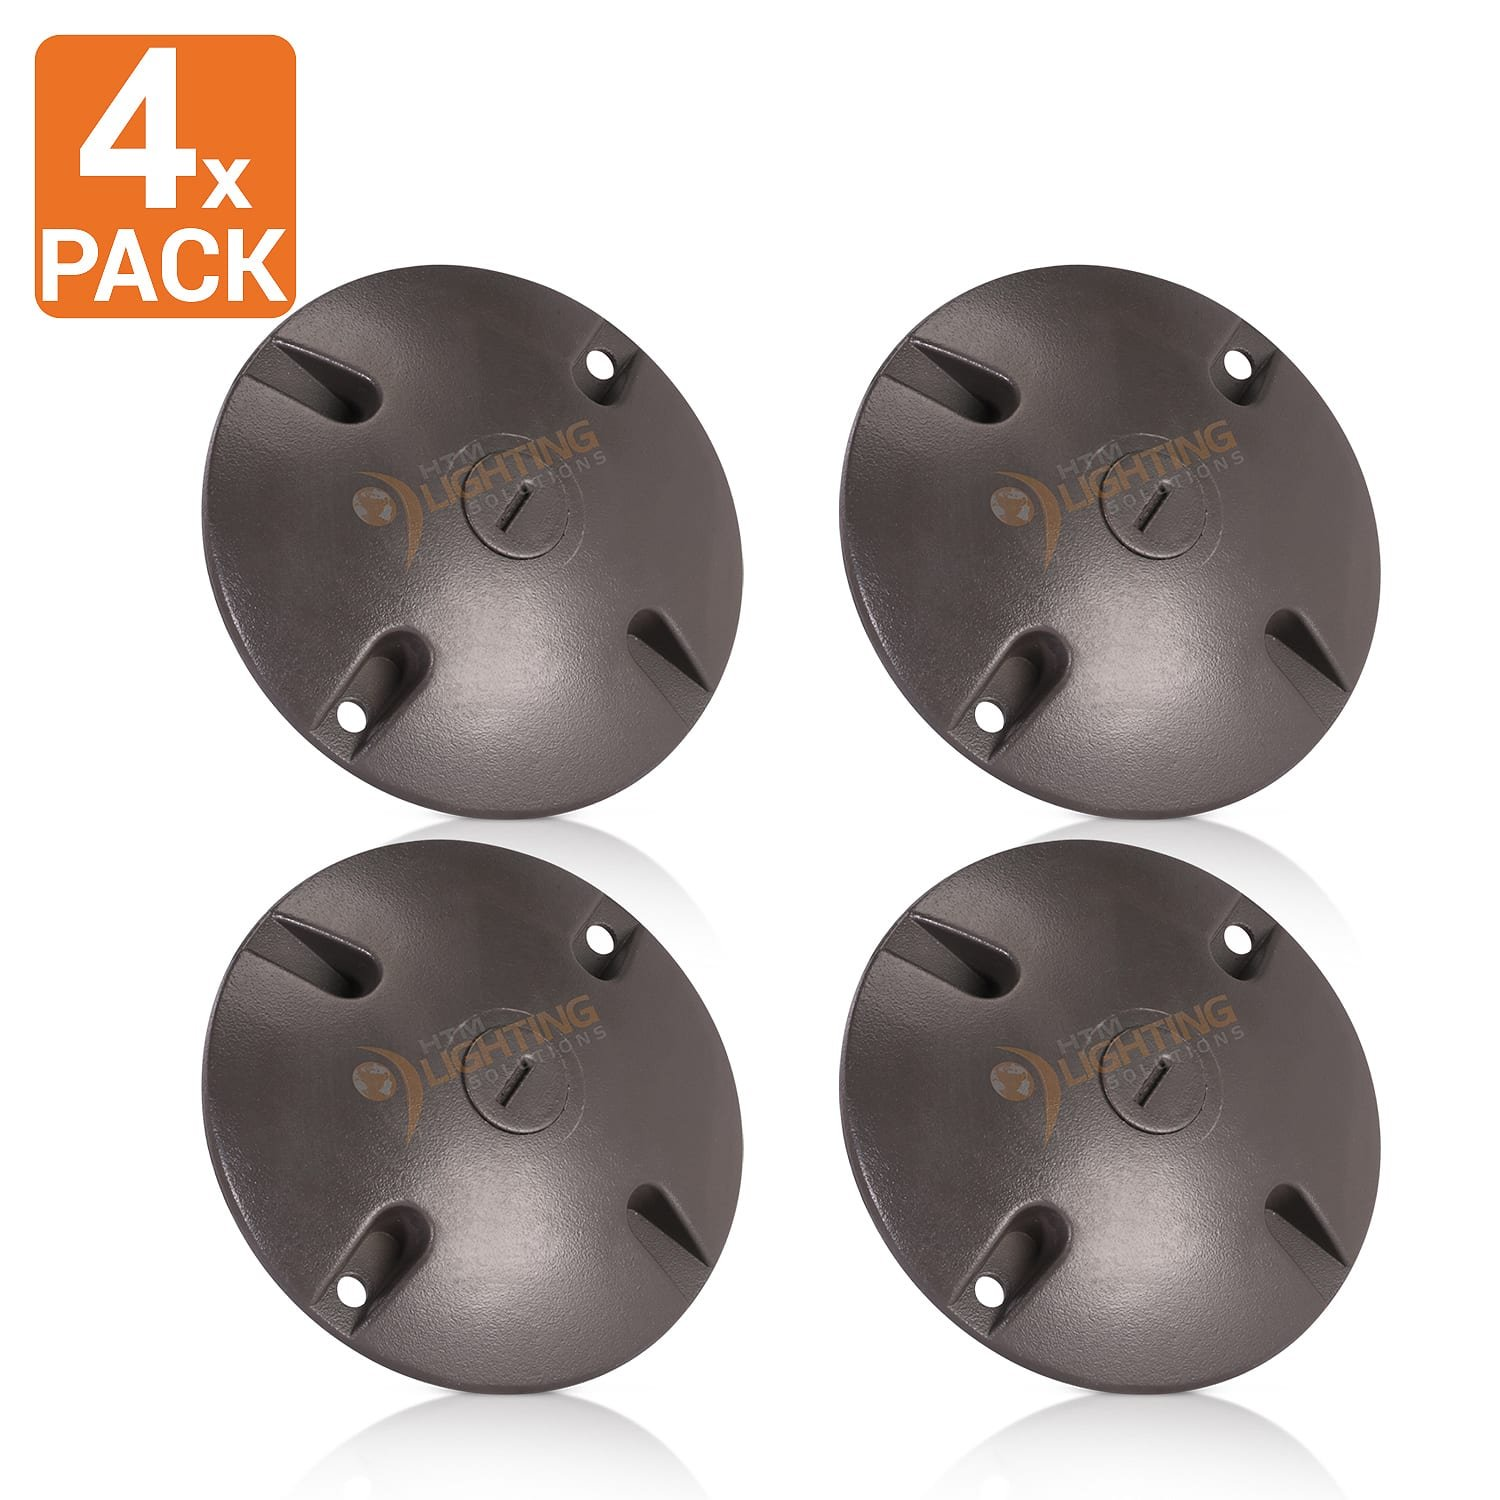 4 in. Round Weatherproof Electrical Junction Box Cover with 1/2 in. NPT Thread Outlet for Indoor/Outdoor Use – Landscape Accessories – Bronze (4-Pack) by HTM Lighting Solutions